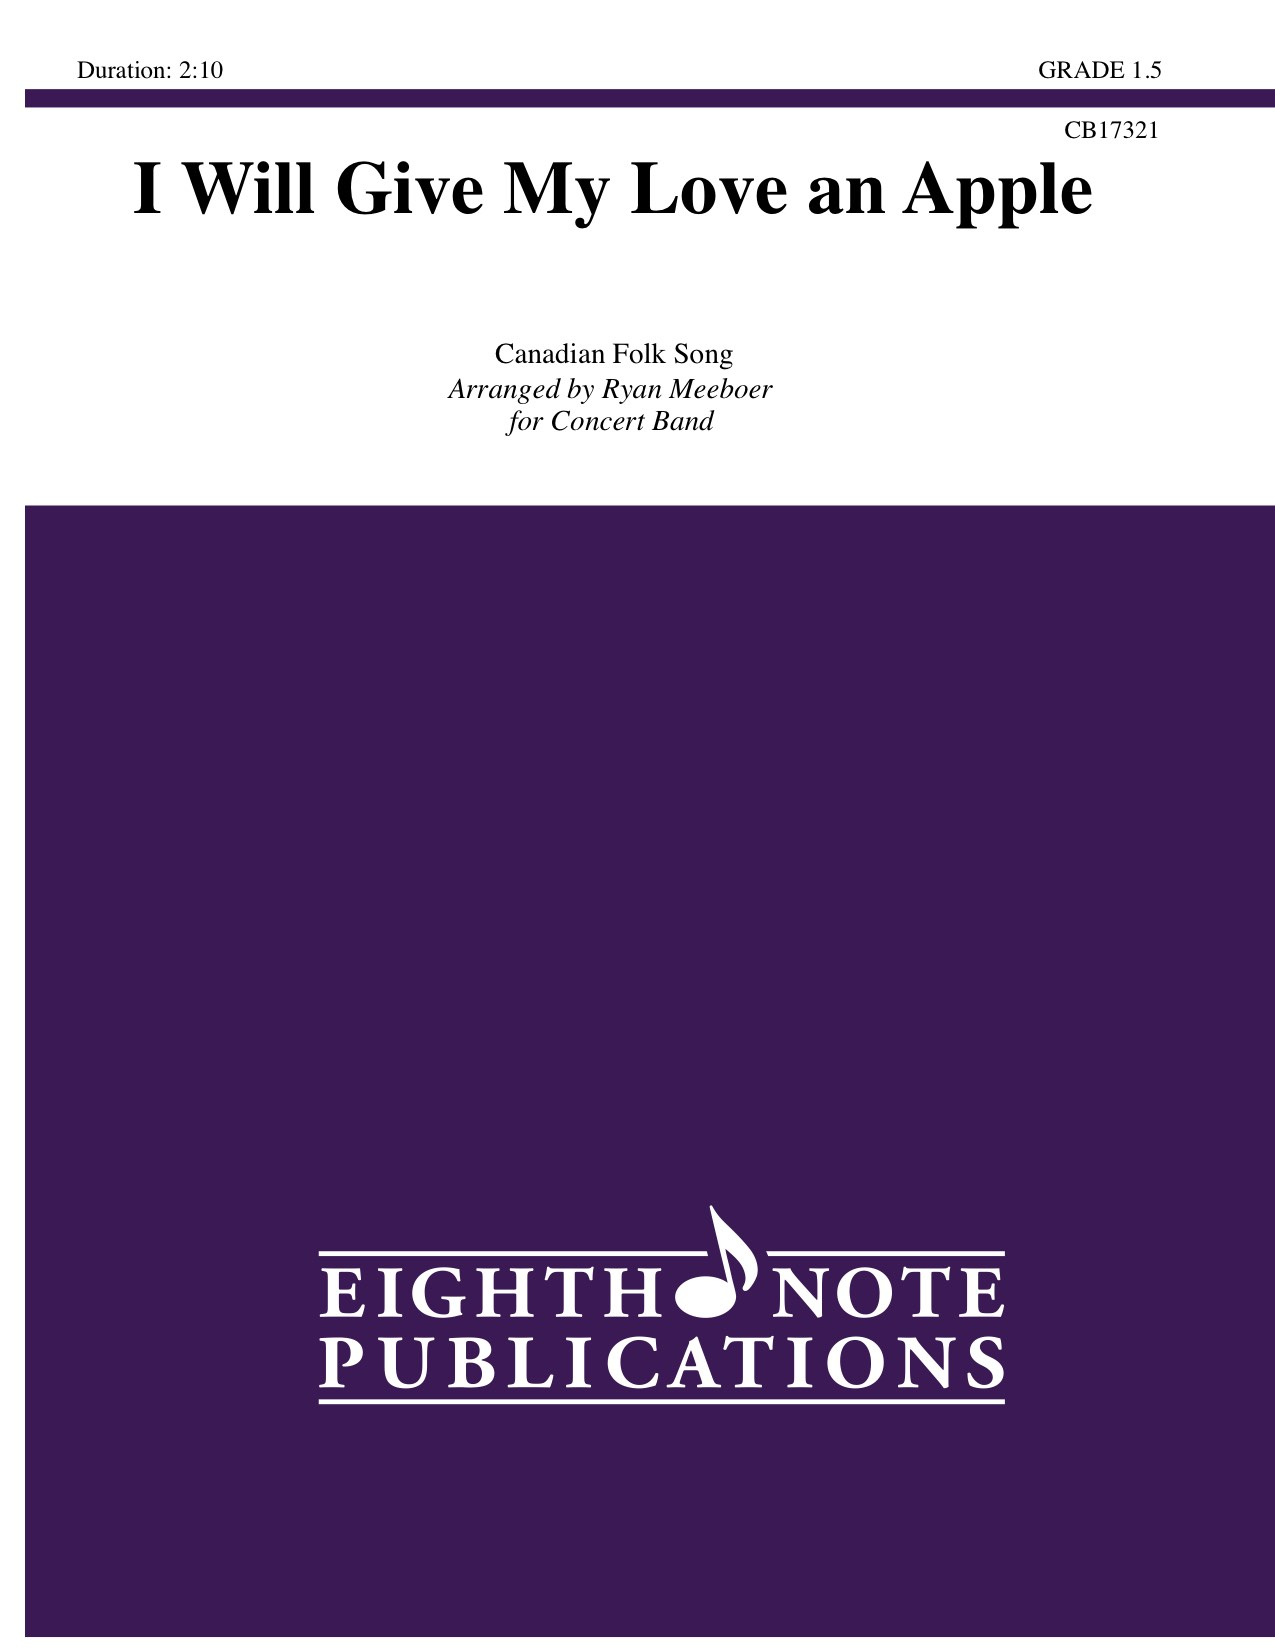 Eighth Note Publications - I Will Give My Love an Apple